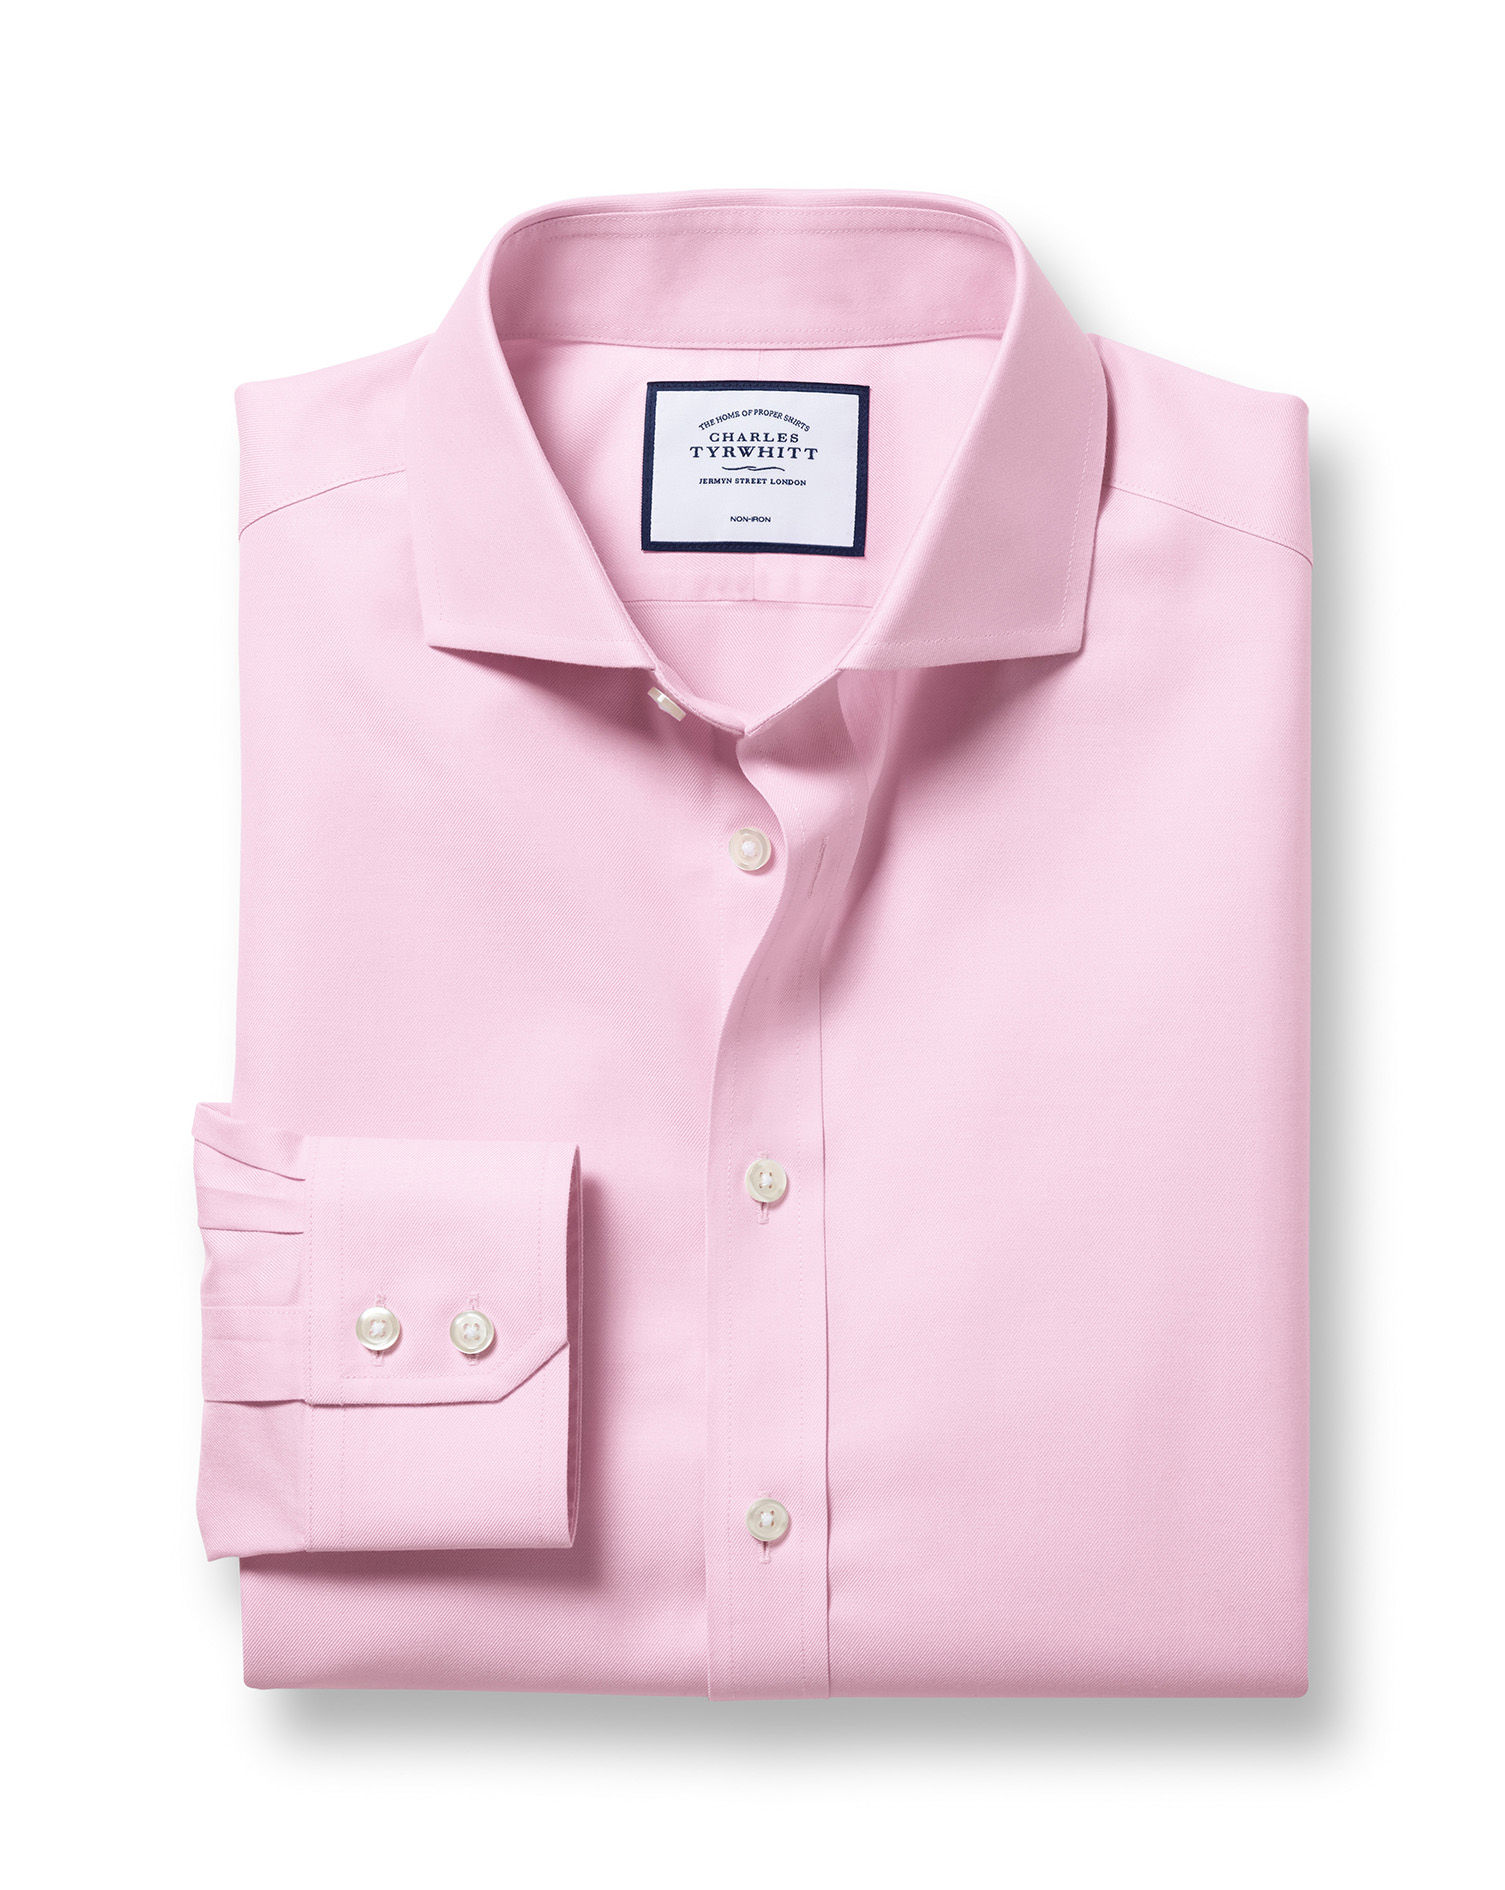 Extra Slim Fit Cutaway Non-Iron Twill Pink Cotton Formal Shirt Single Cuff Size 16/33 by Charles Tyr